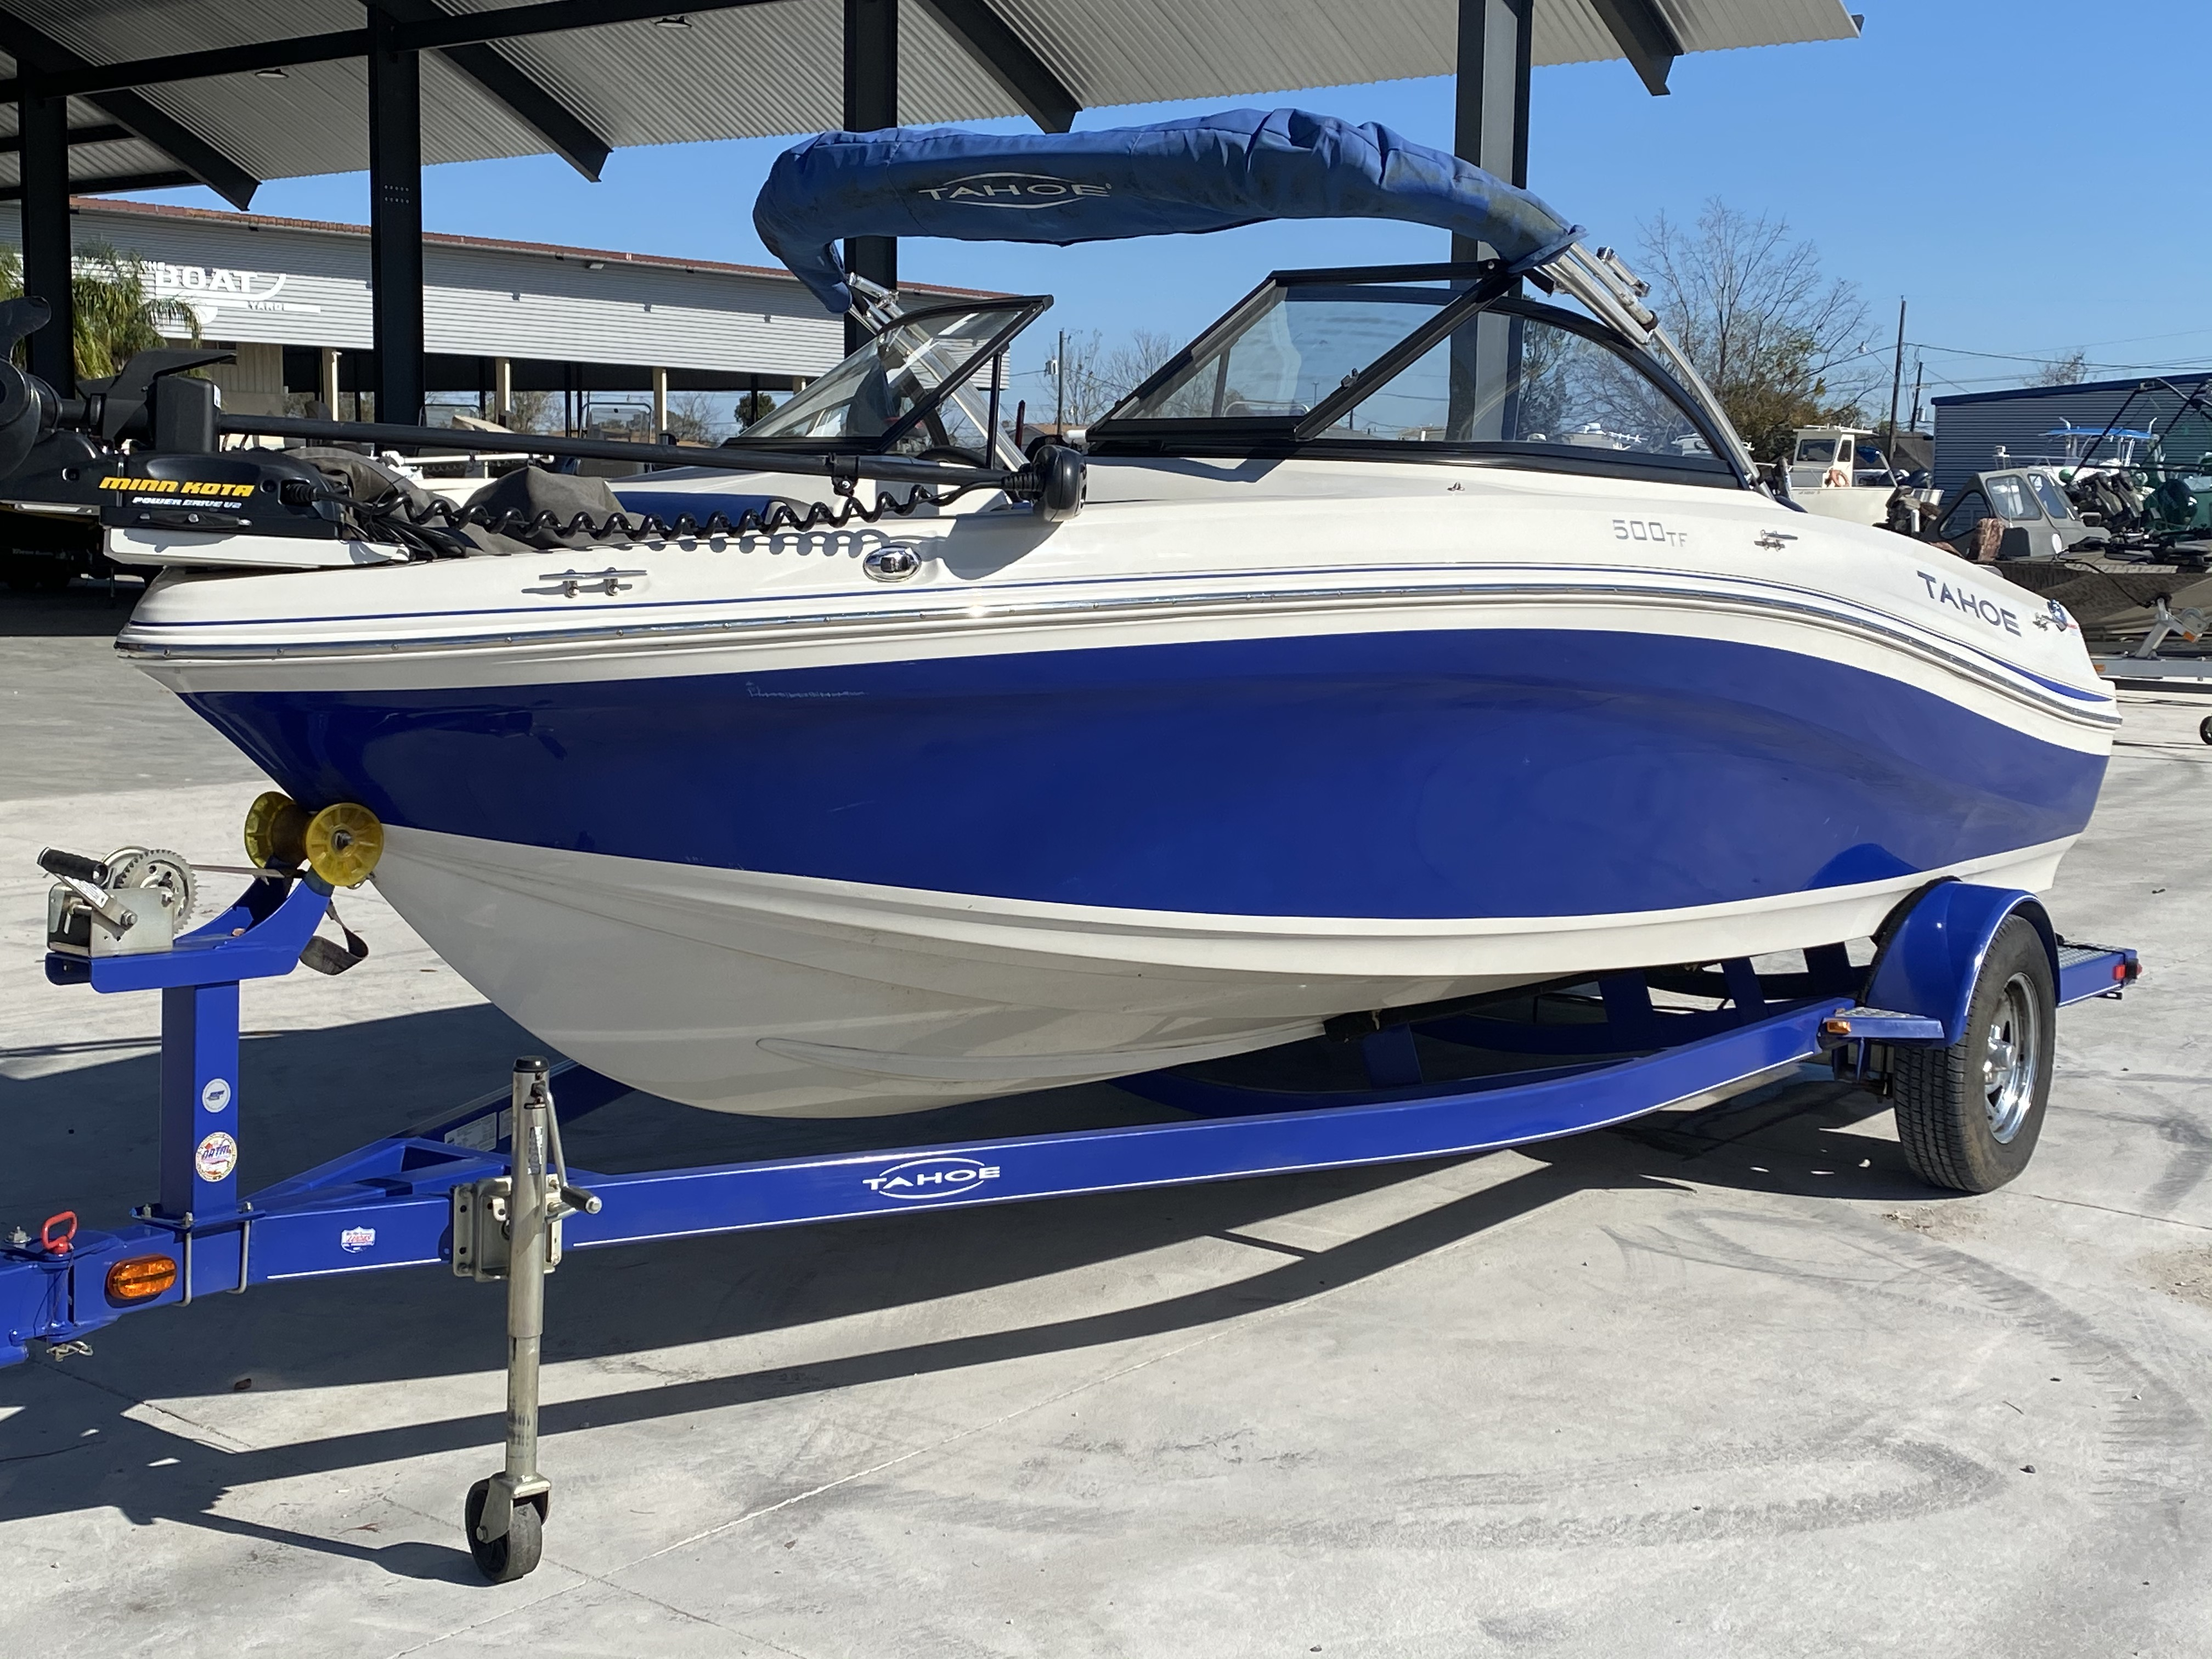 2015 Tahoe boat for sale, model of the boat is 500 TF & Image # 10 of 12